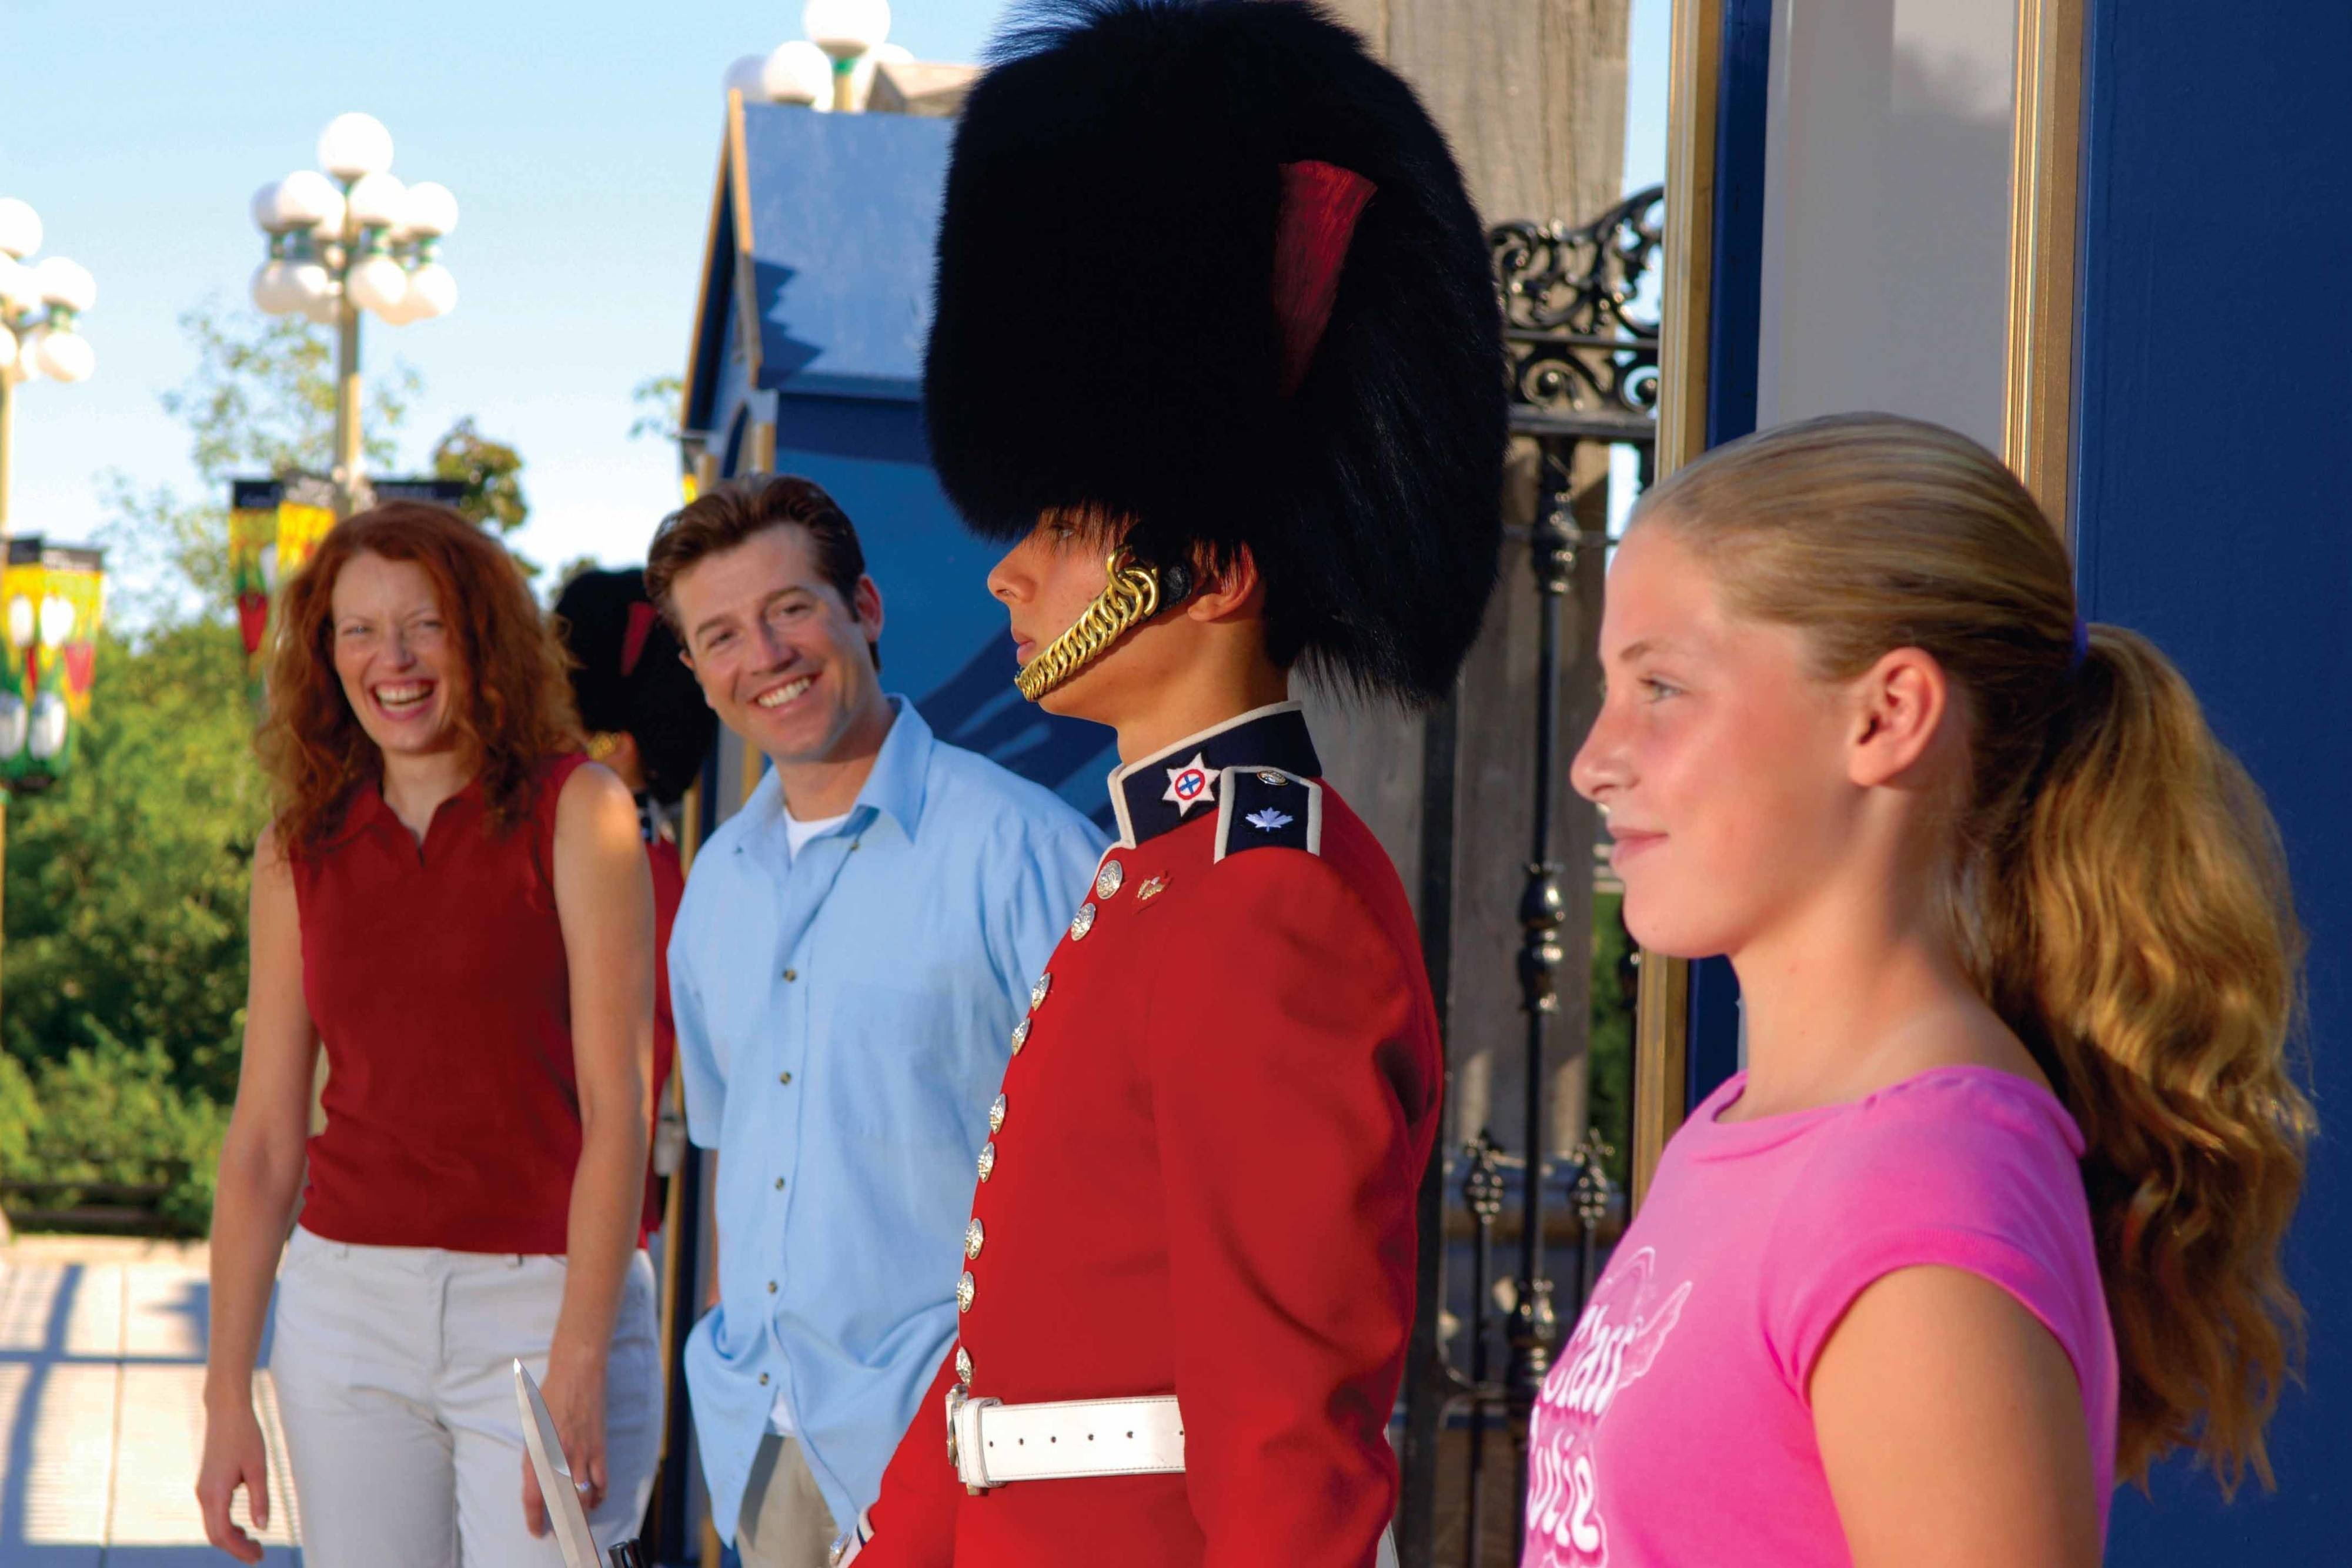 Ottawa's Rideau Hall ceremonial guard